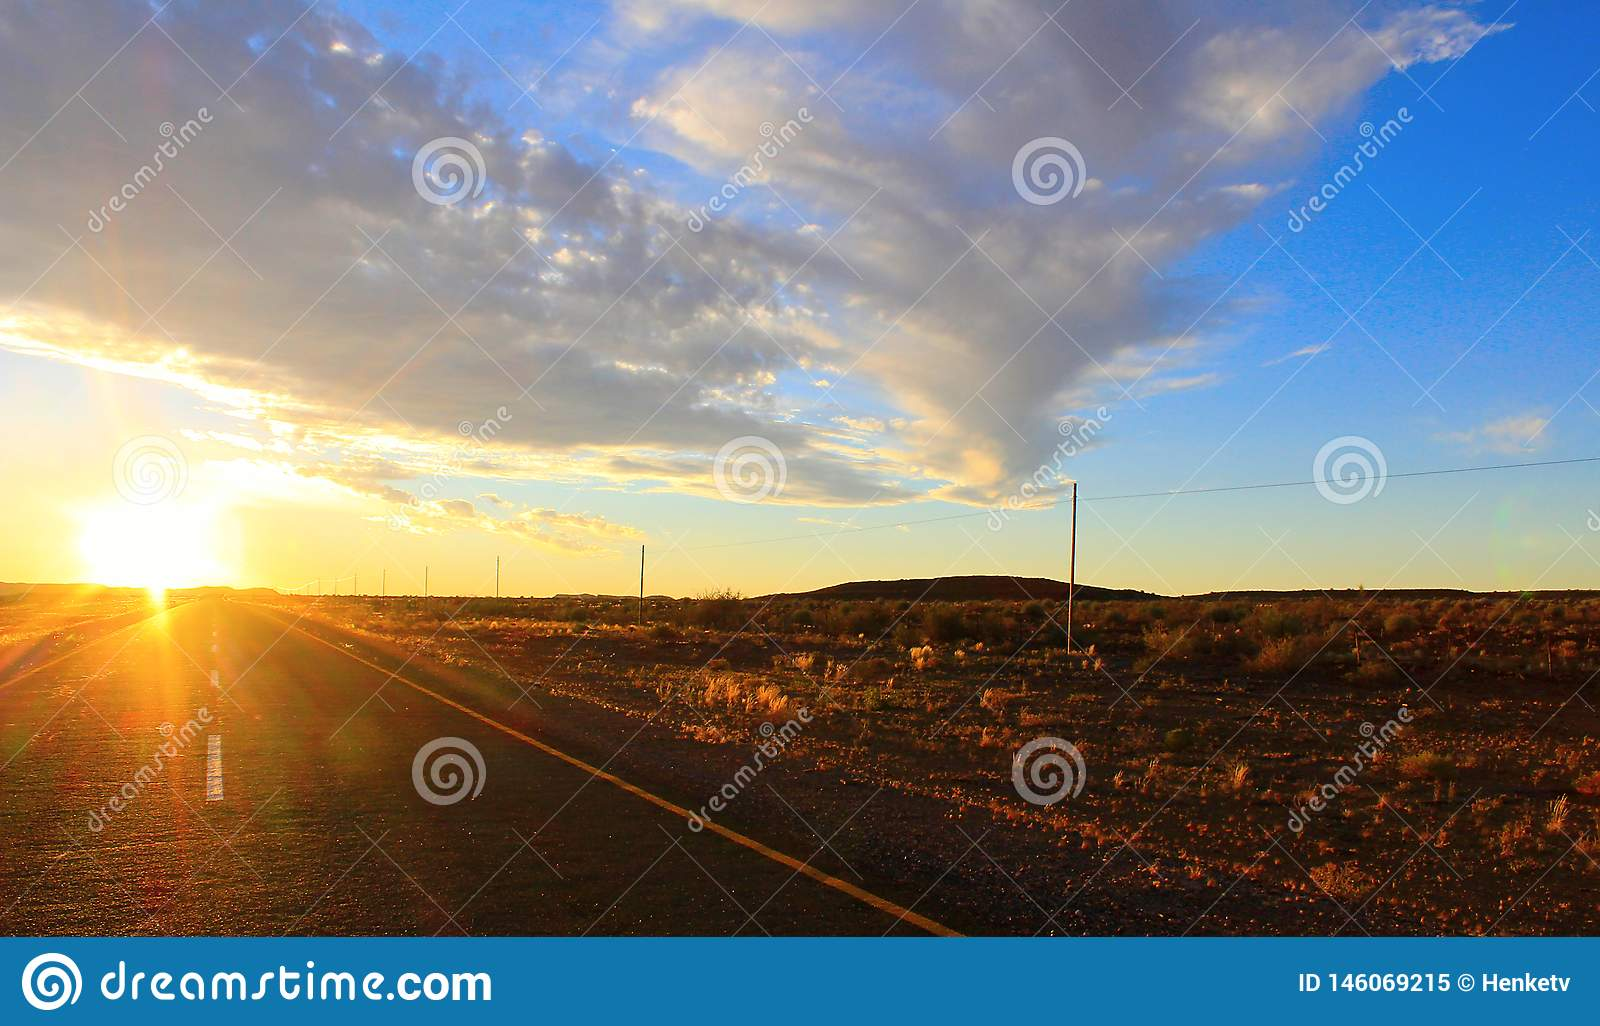 Sunset sky and road in the desert